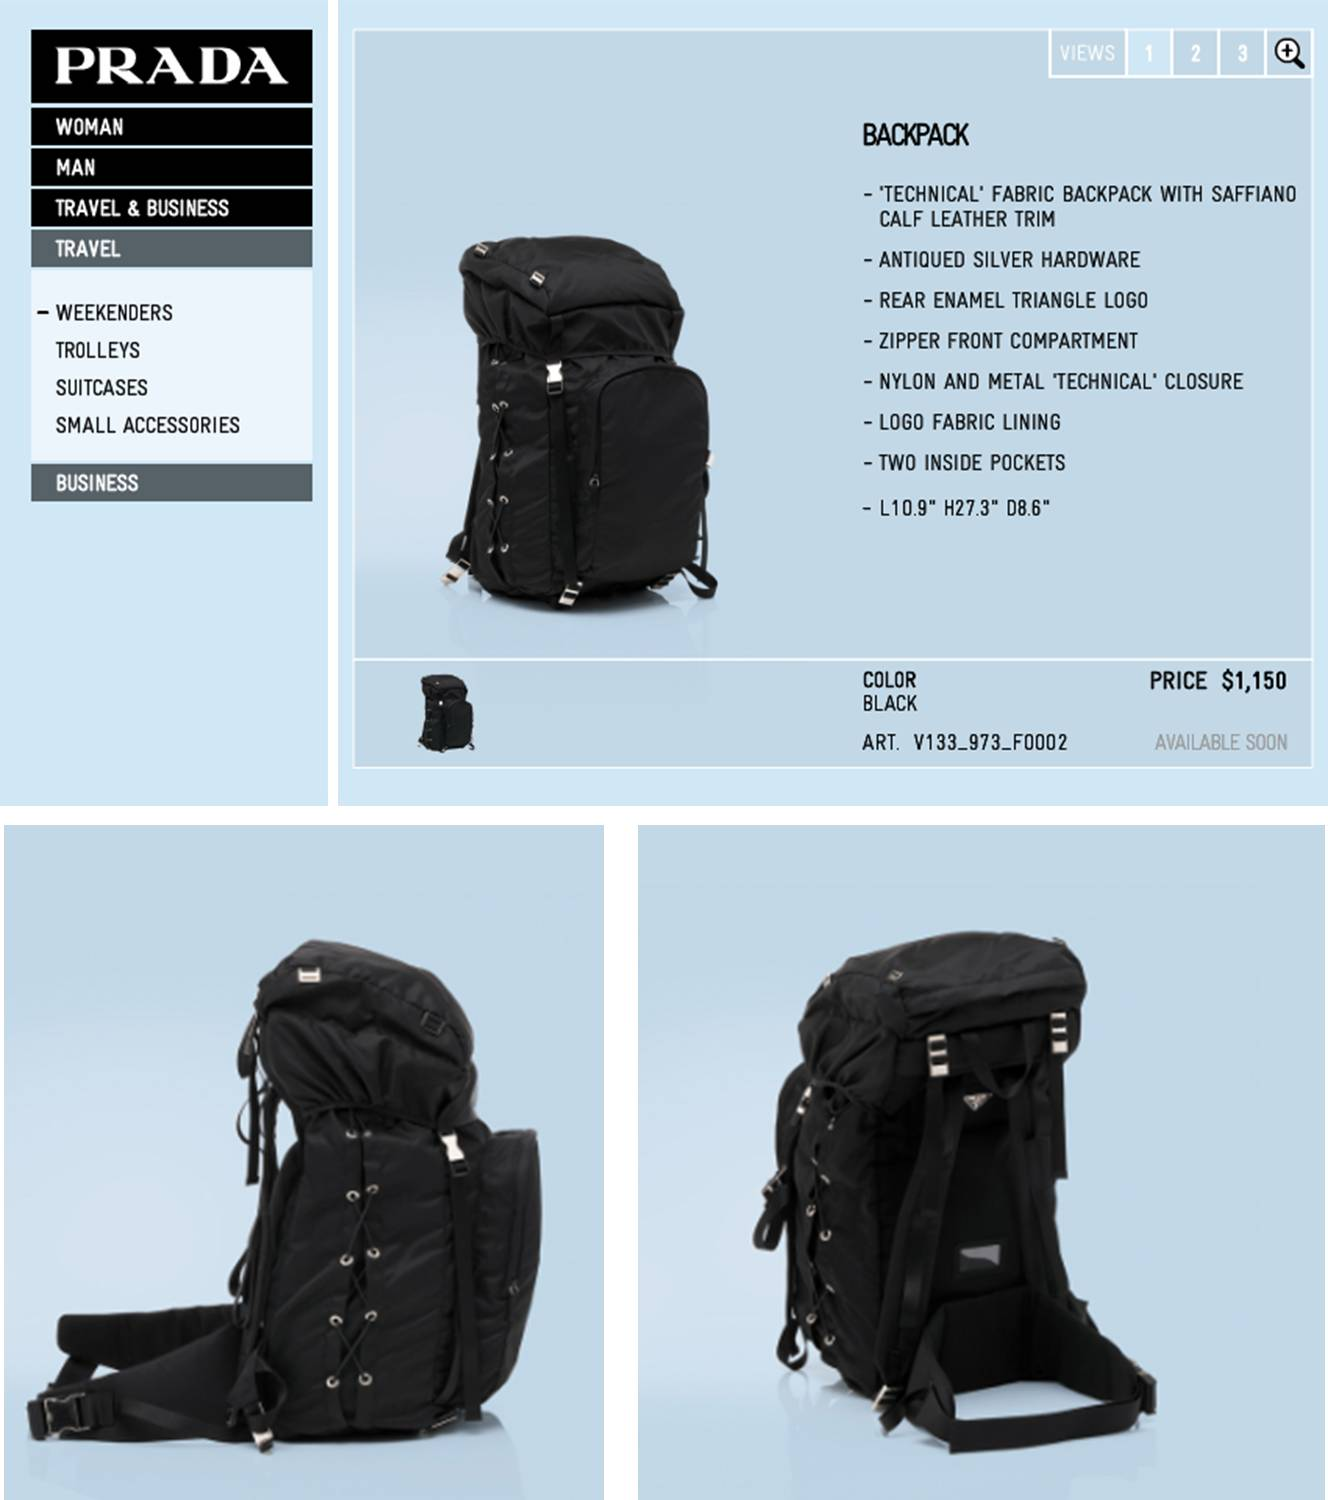 44e38cd11829 laptop in a prada: the chicest hiking backpack in the world